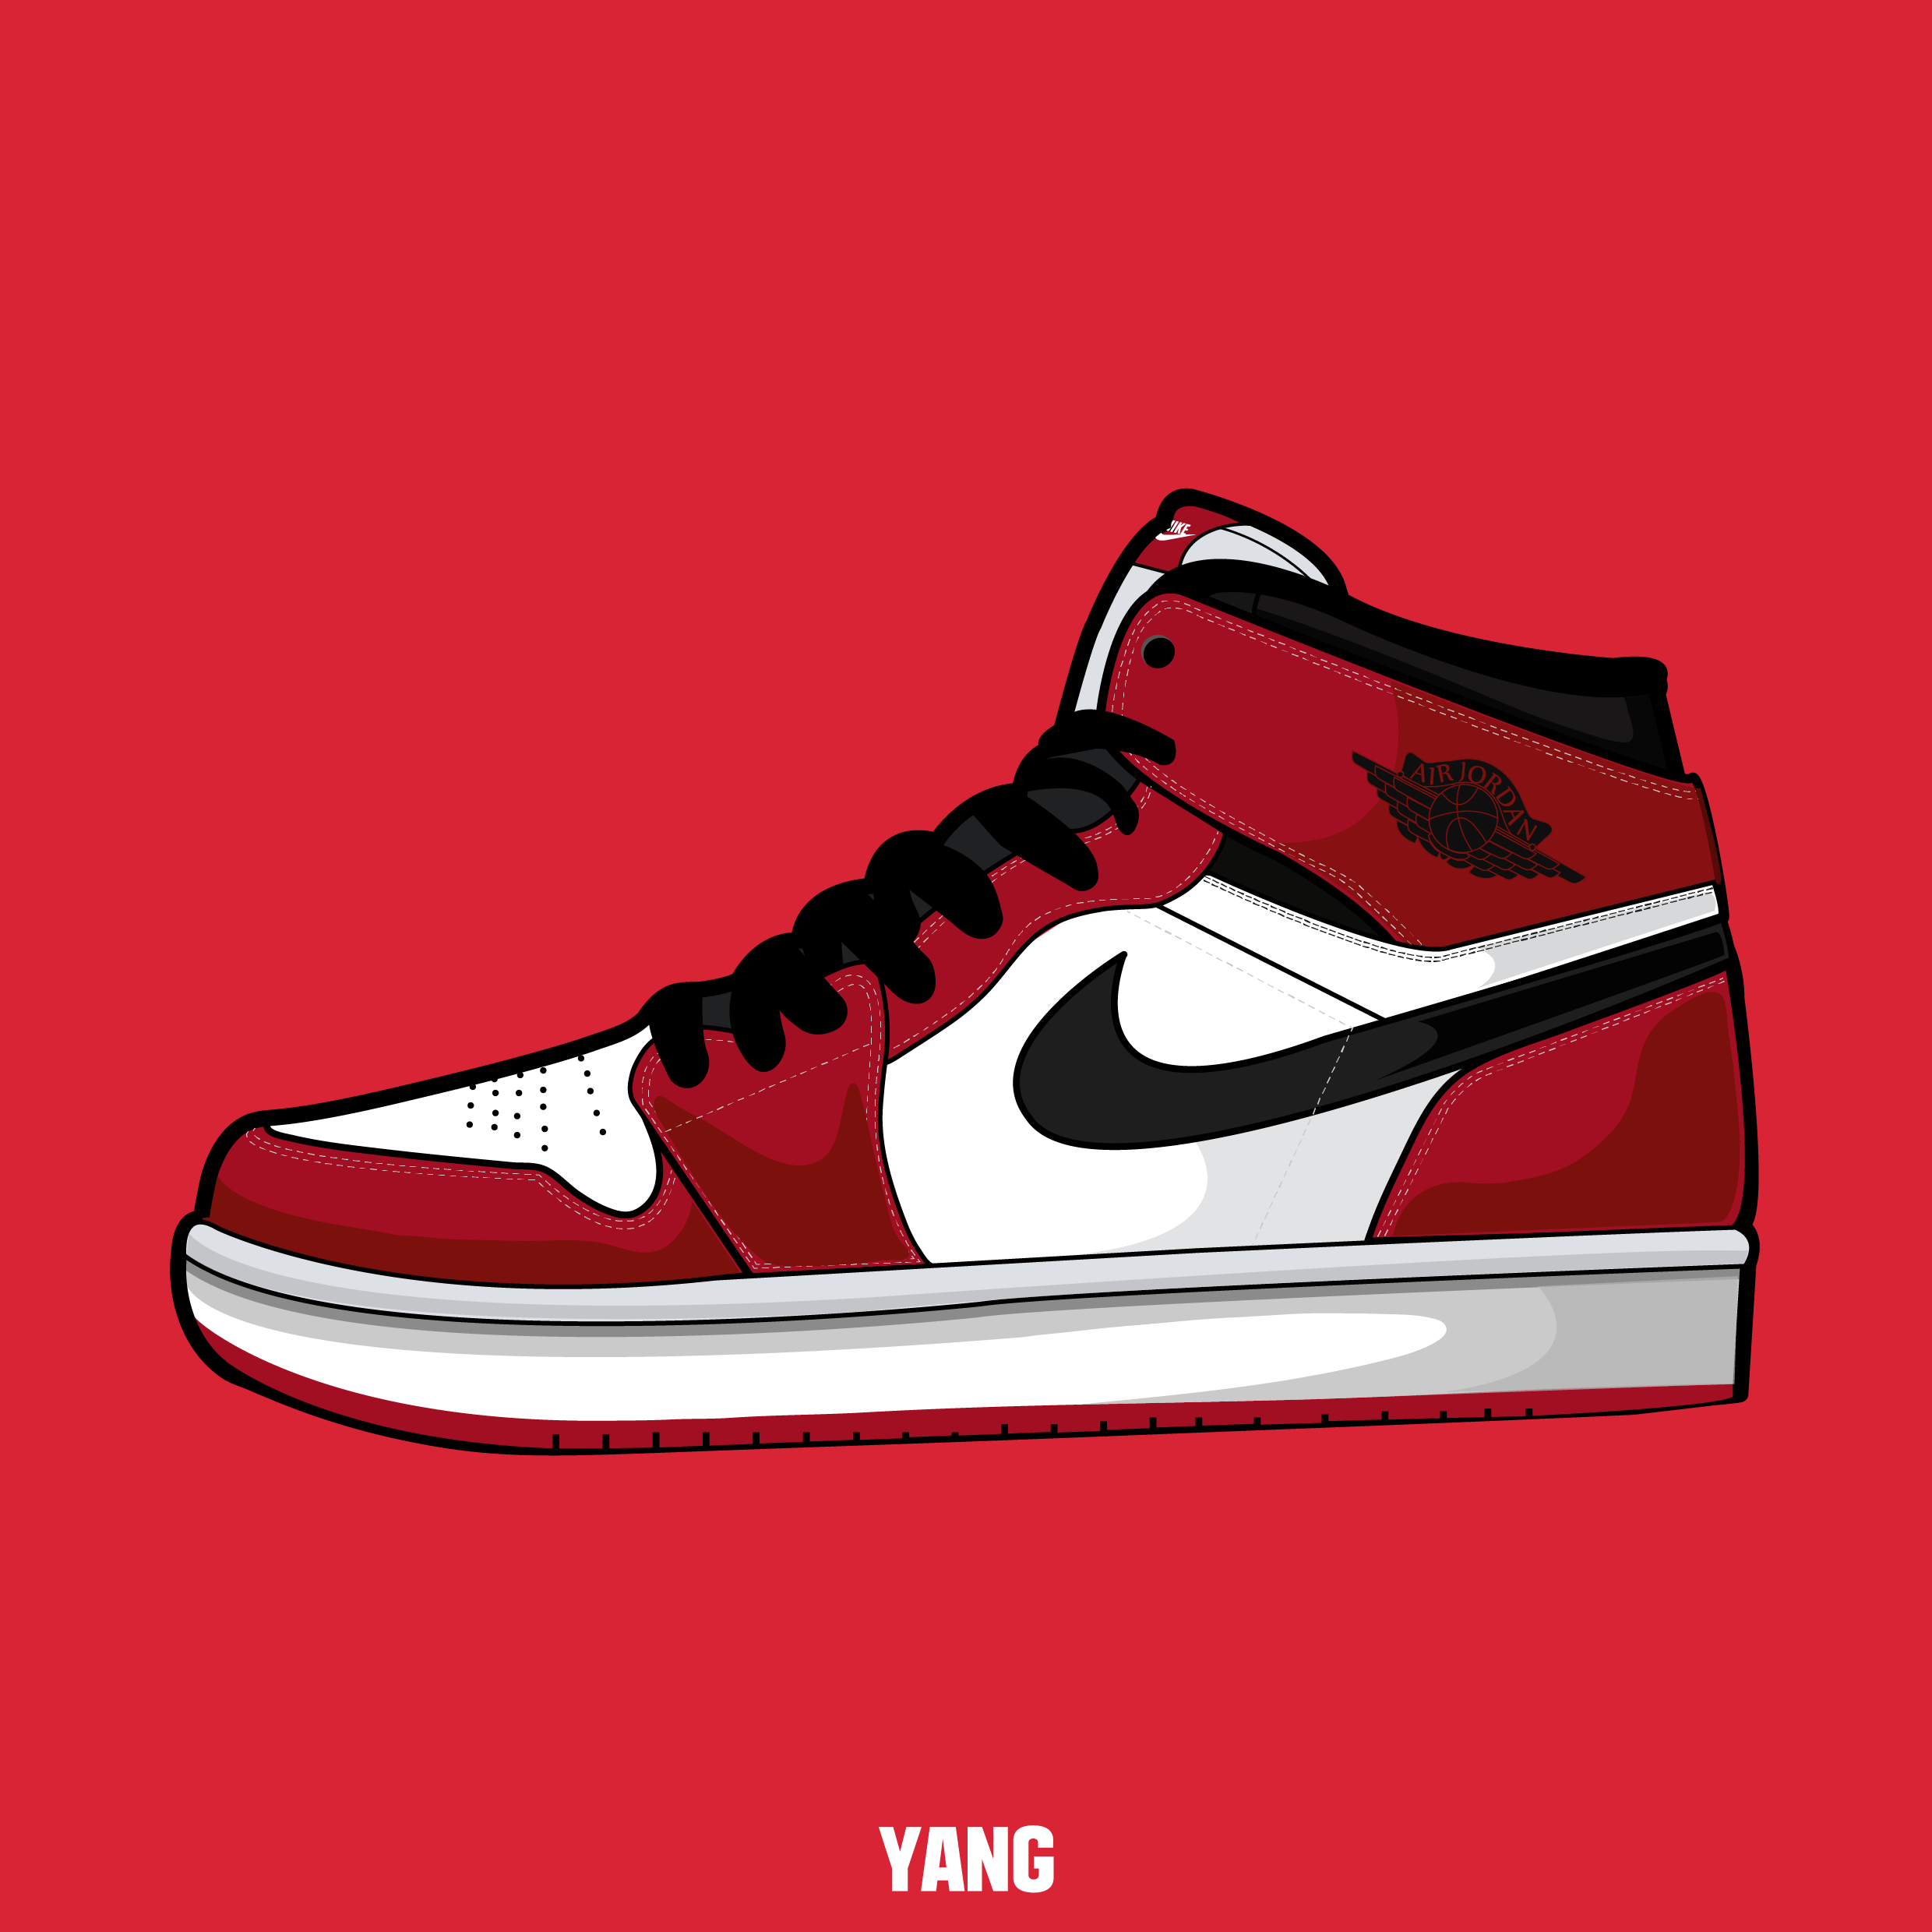 5833fd51ce2 drawing, shoes, sneakers, nike, air, jordan, carmine,graphic, design,  illustrator, illustration, picture,파인아트,일러스트레이션,일러스트,패션,드로잉,그림, ...